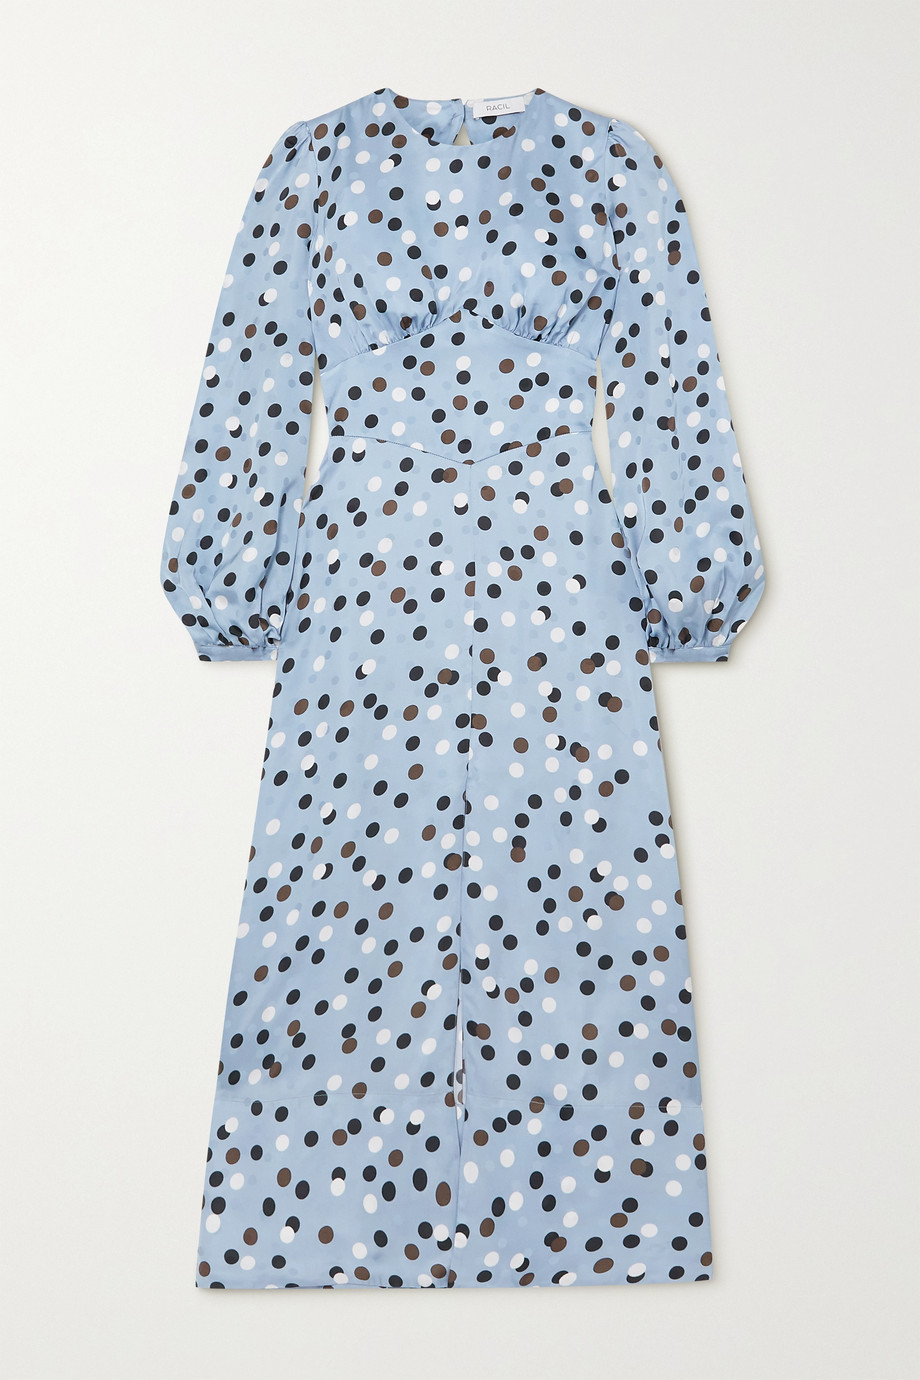 Racil Elisa open-back polka-dot satin midi dress